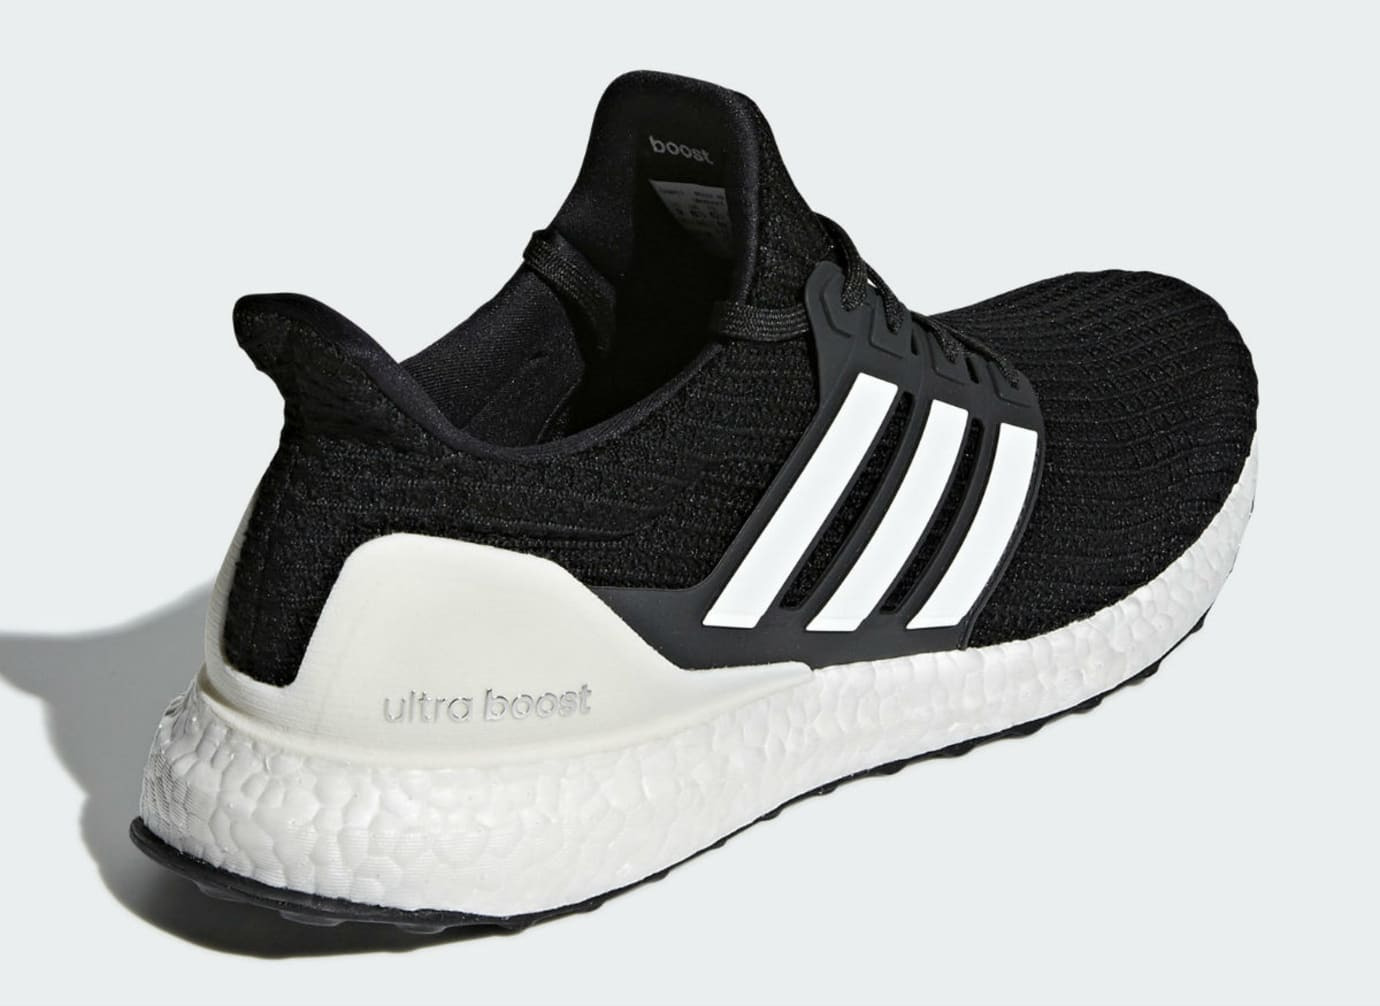 Image via Adidas Adidas Ultra Boost 4.0 Show Your Stripes Core Black Cloud  White Carbon Release date AQ0062 Back 708bf0891